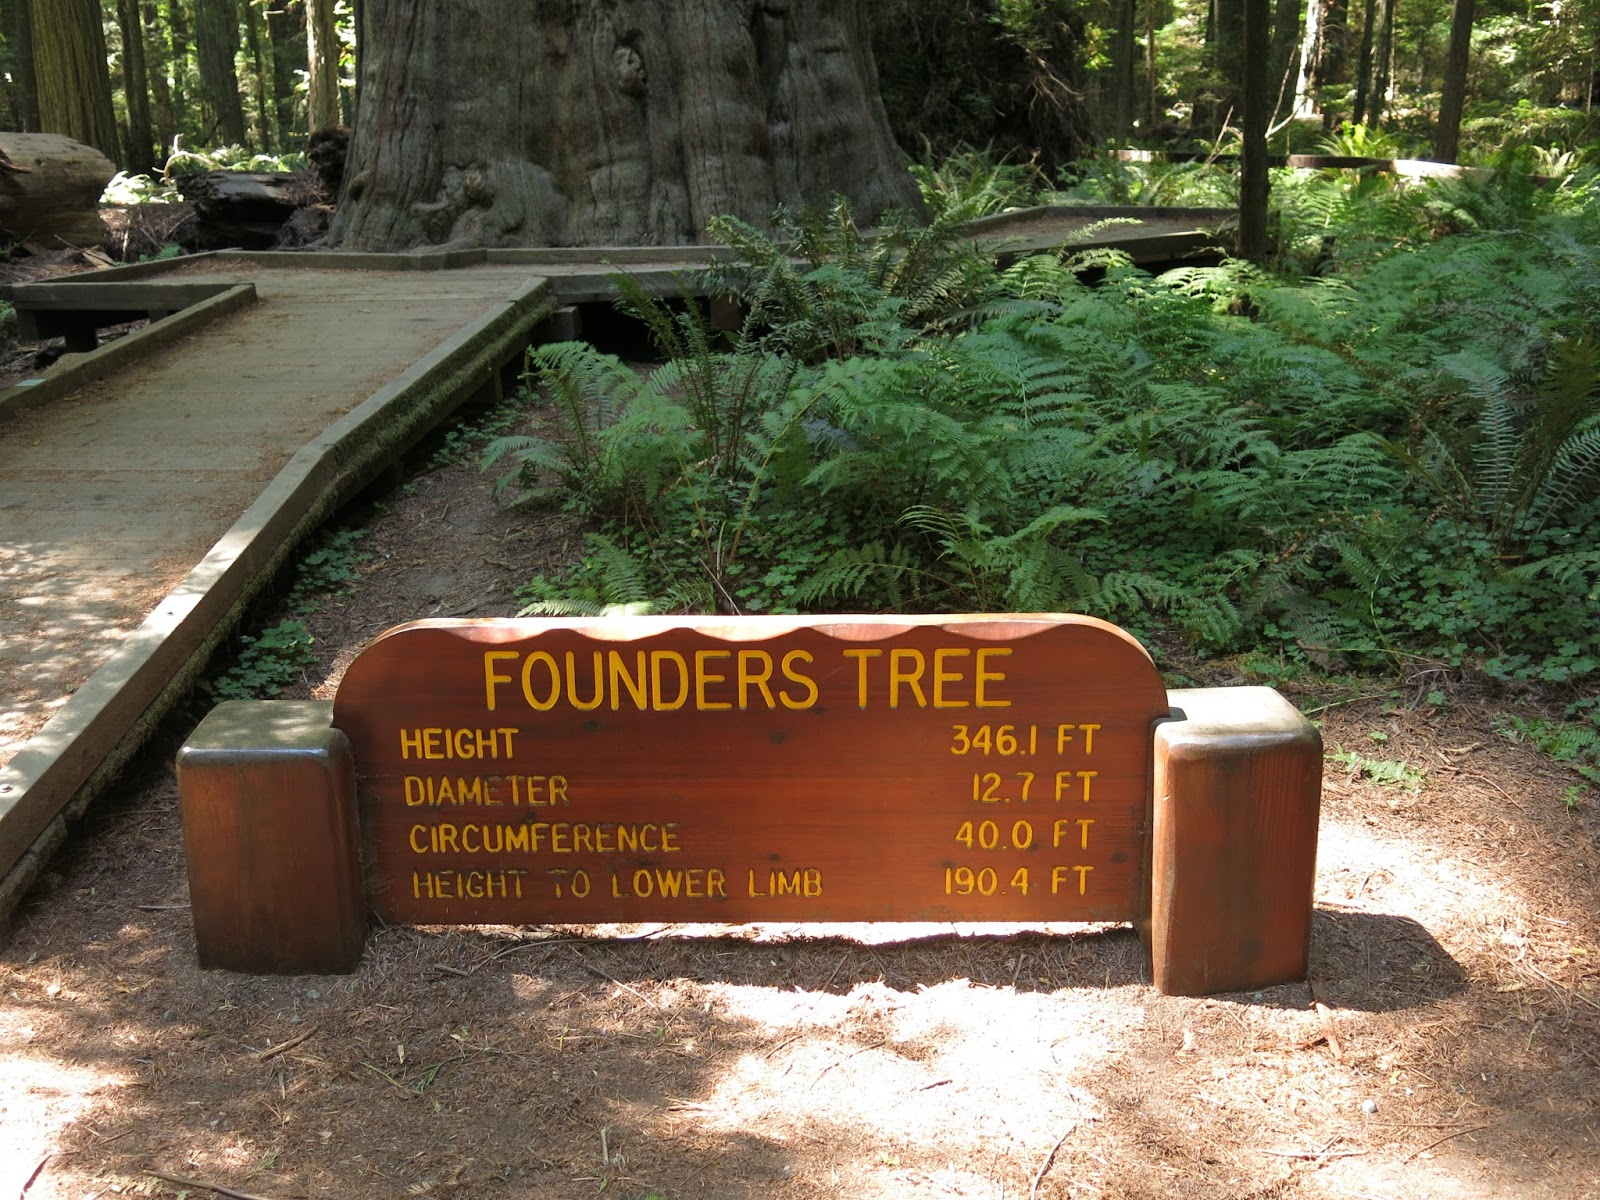 Rounders Tree Sign